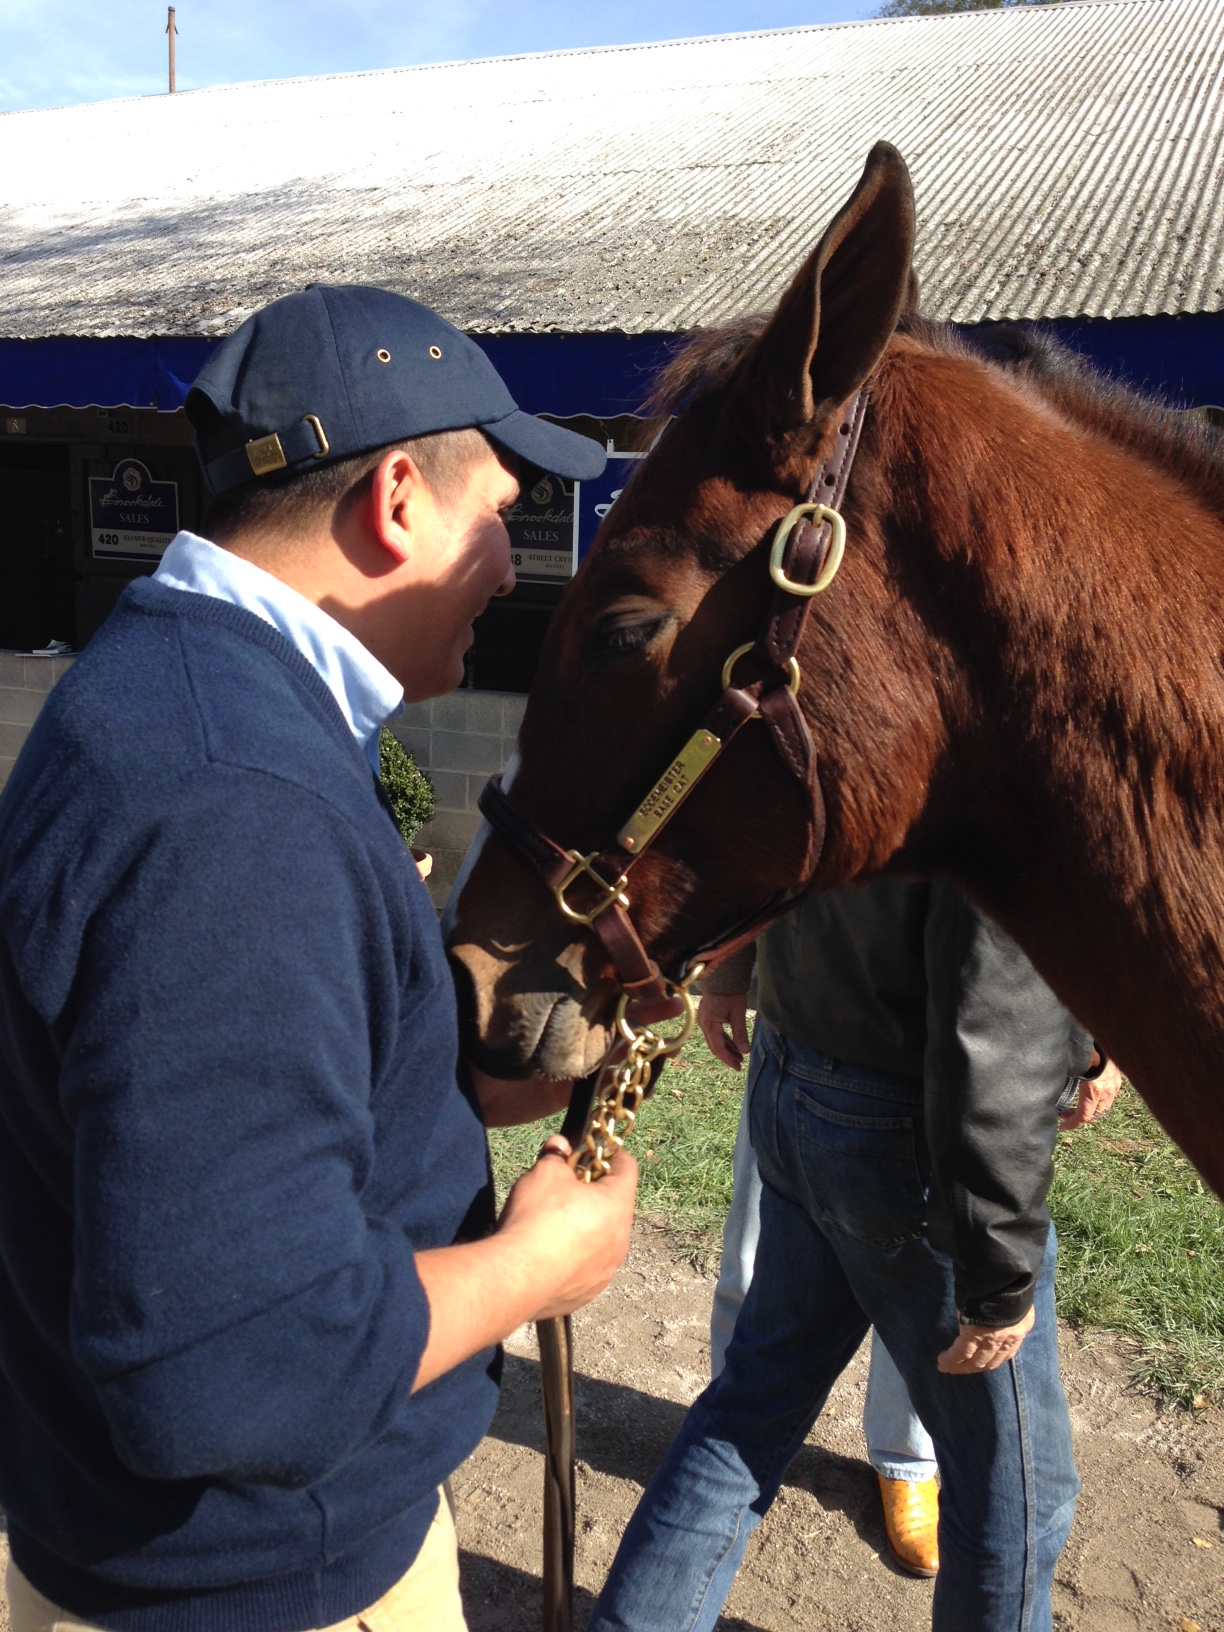 A groom is key to keeping the horse calm. The Sage Car weanling being soothed by her groom